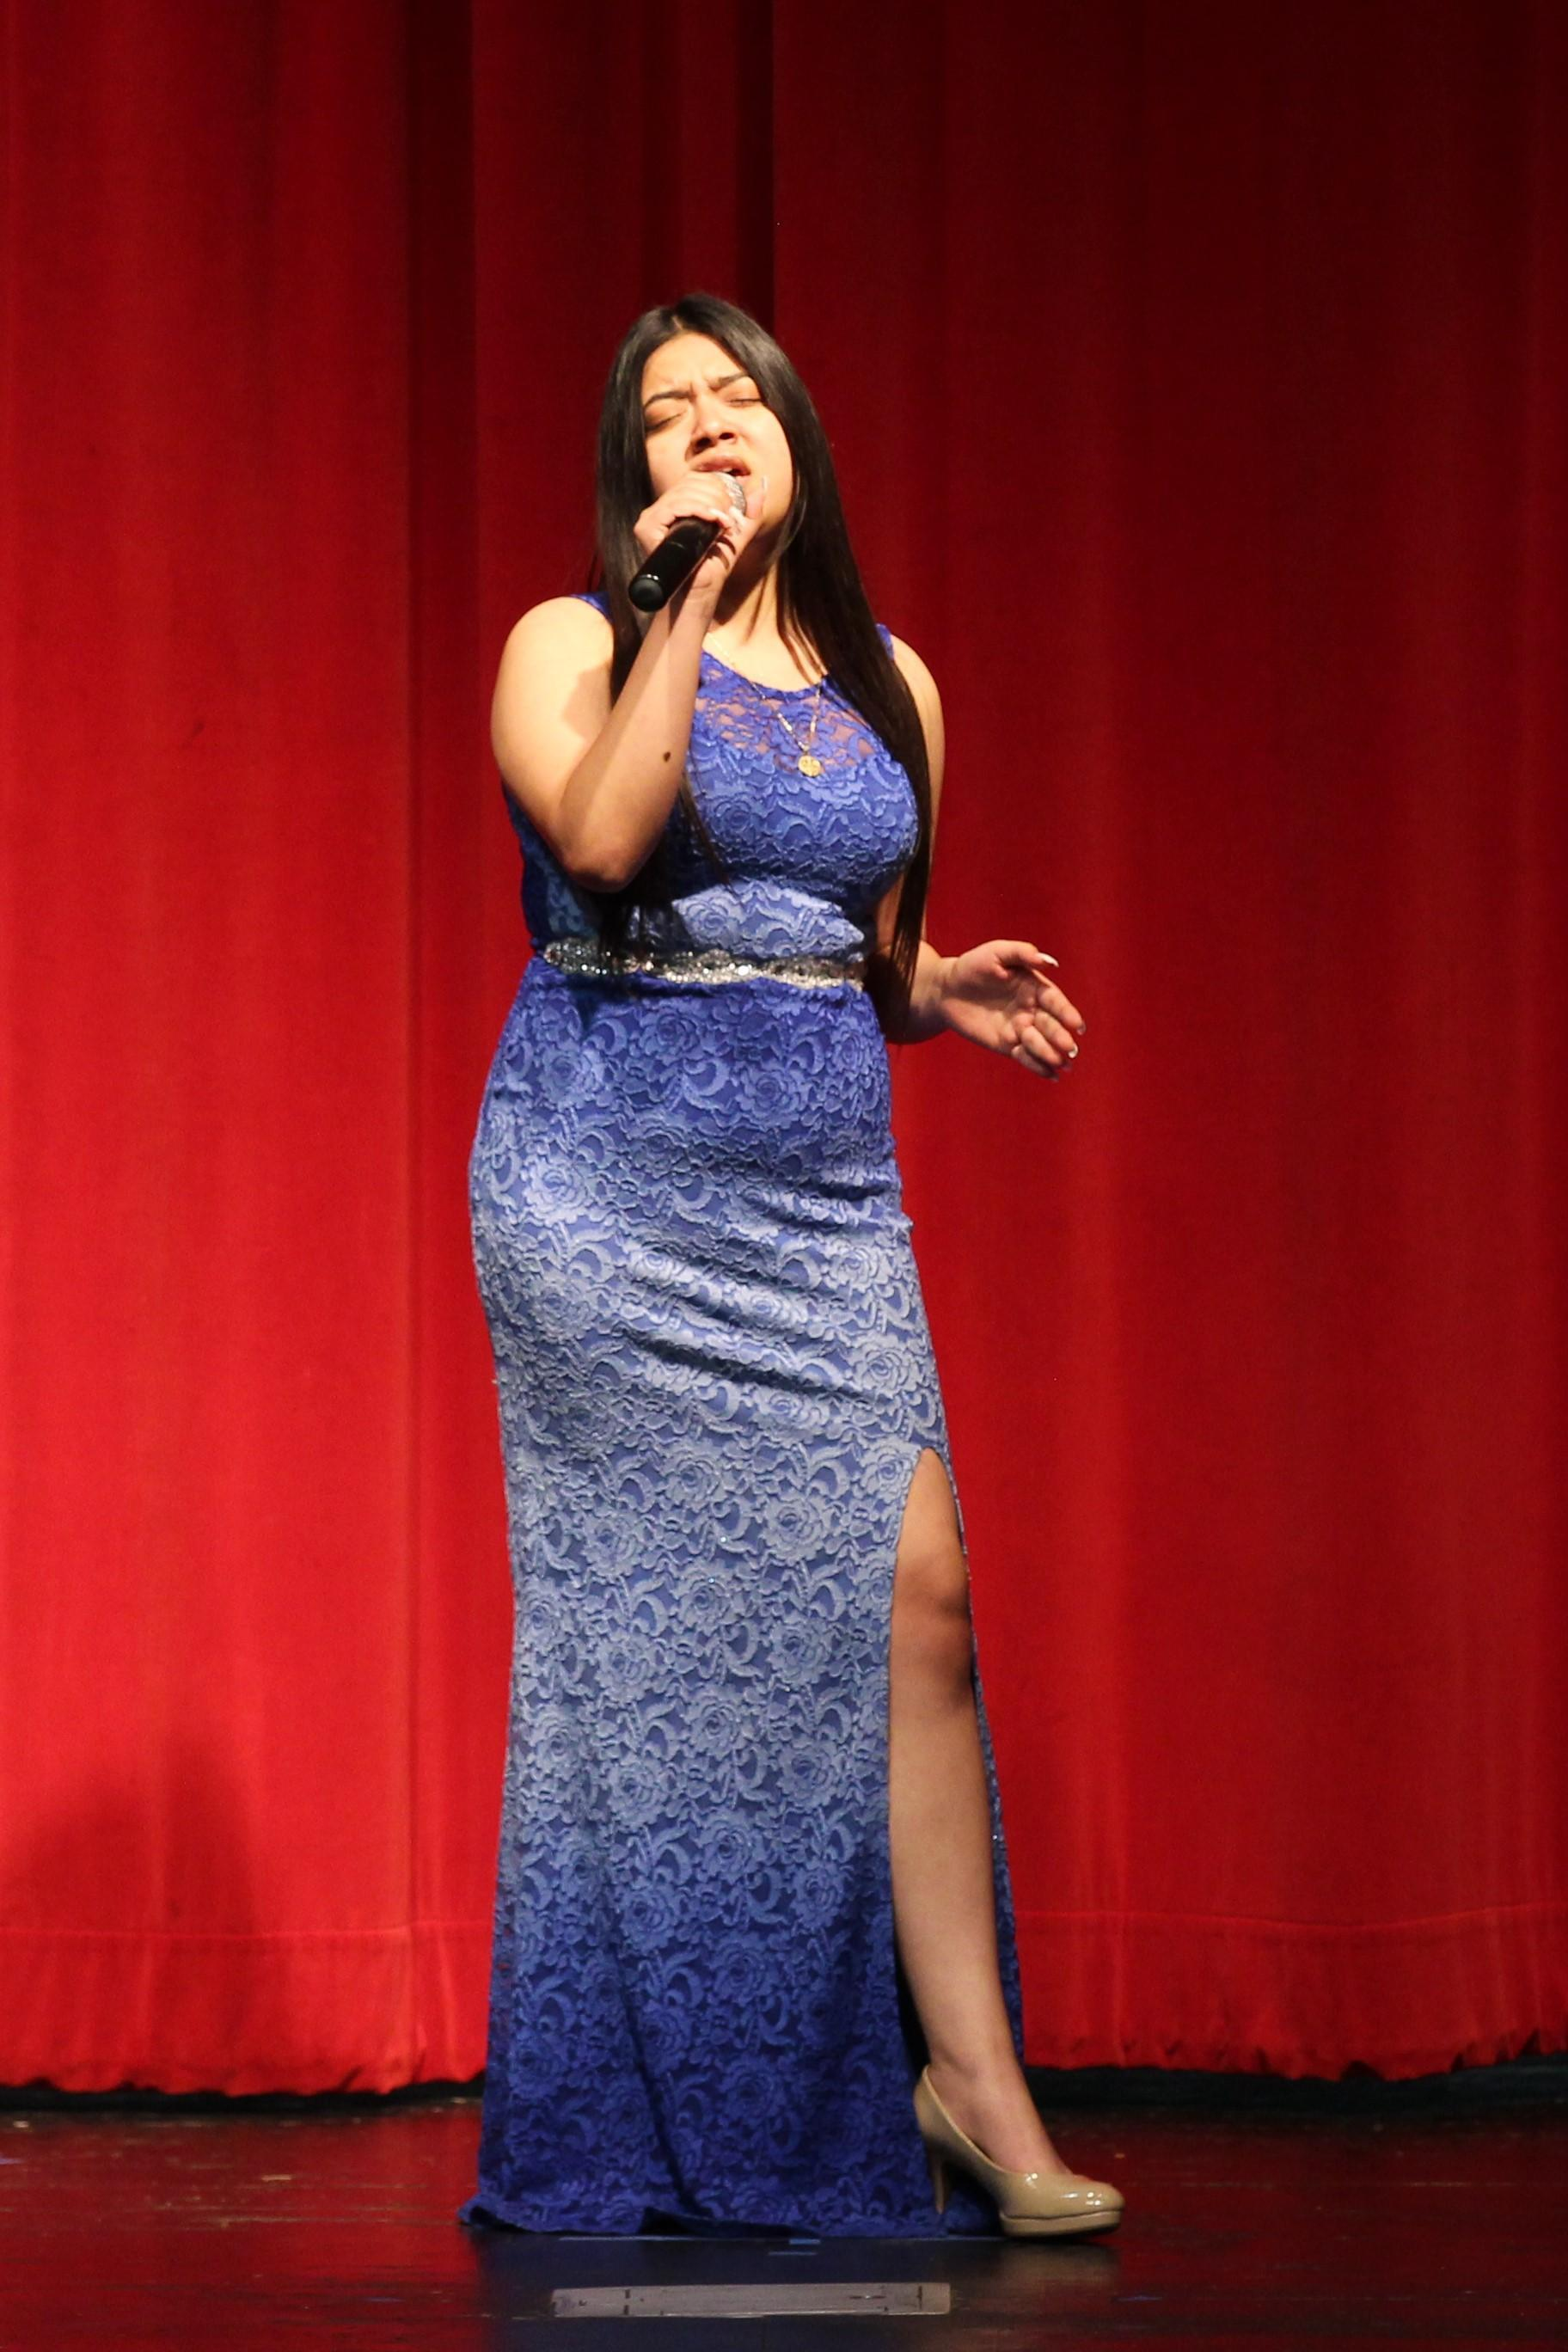 Karla Ceja singing at the talent show